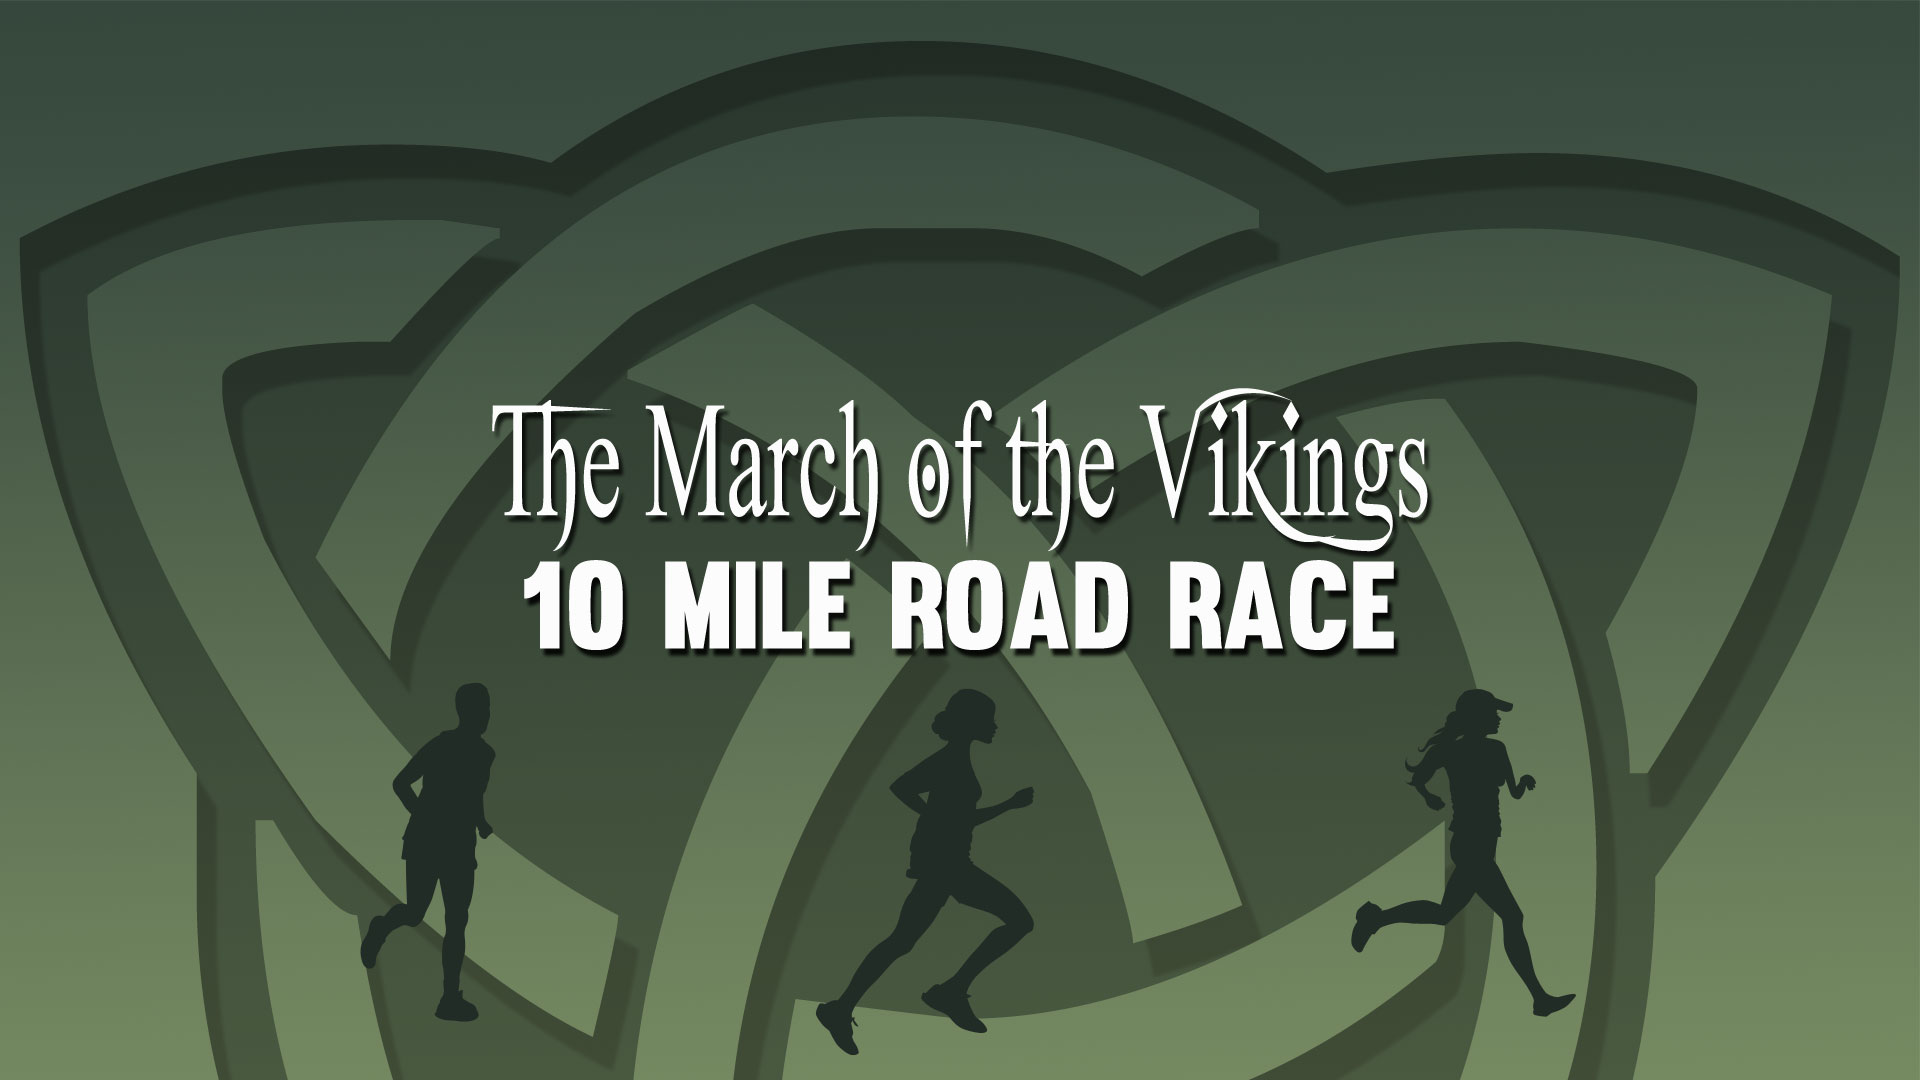 Download March Of The Vikings - Road Race A4 Poster